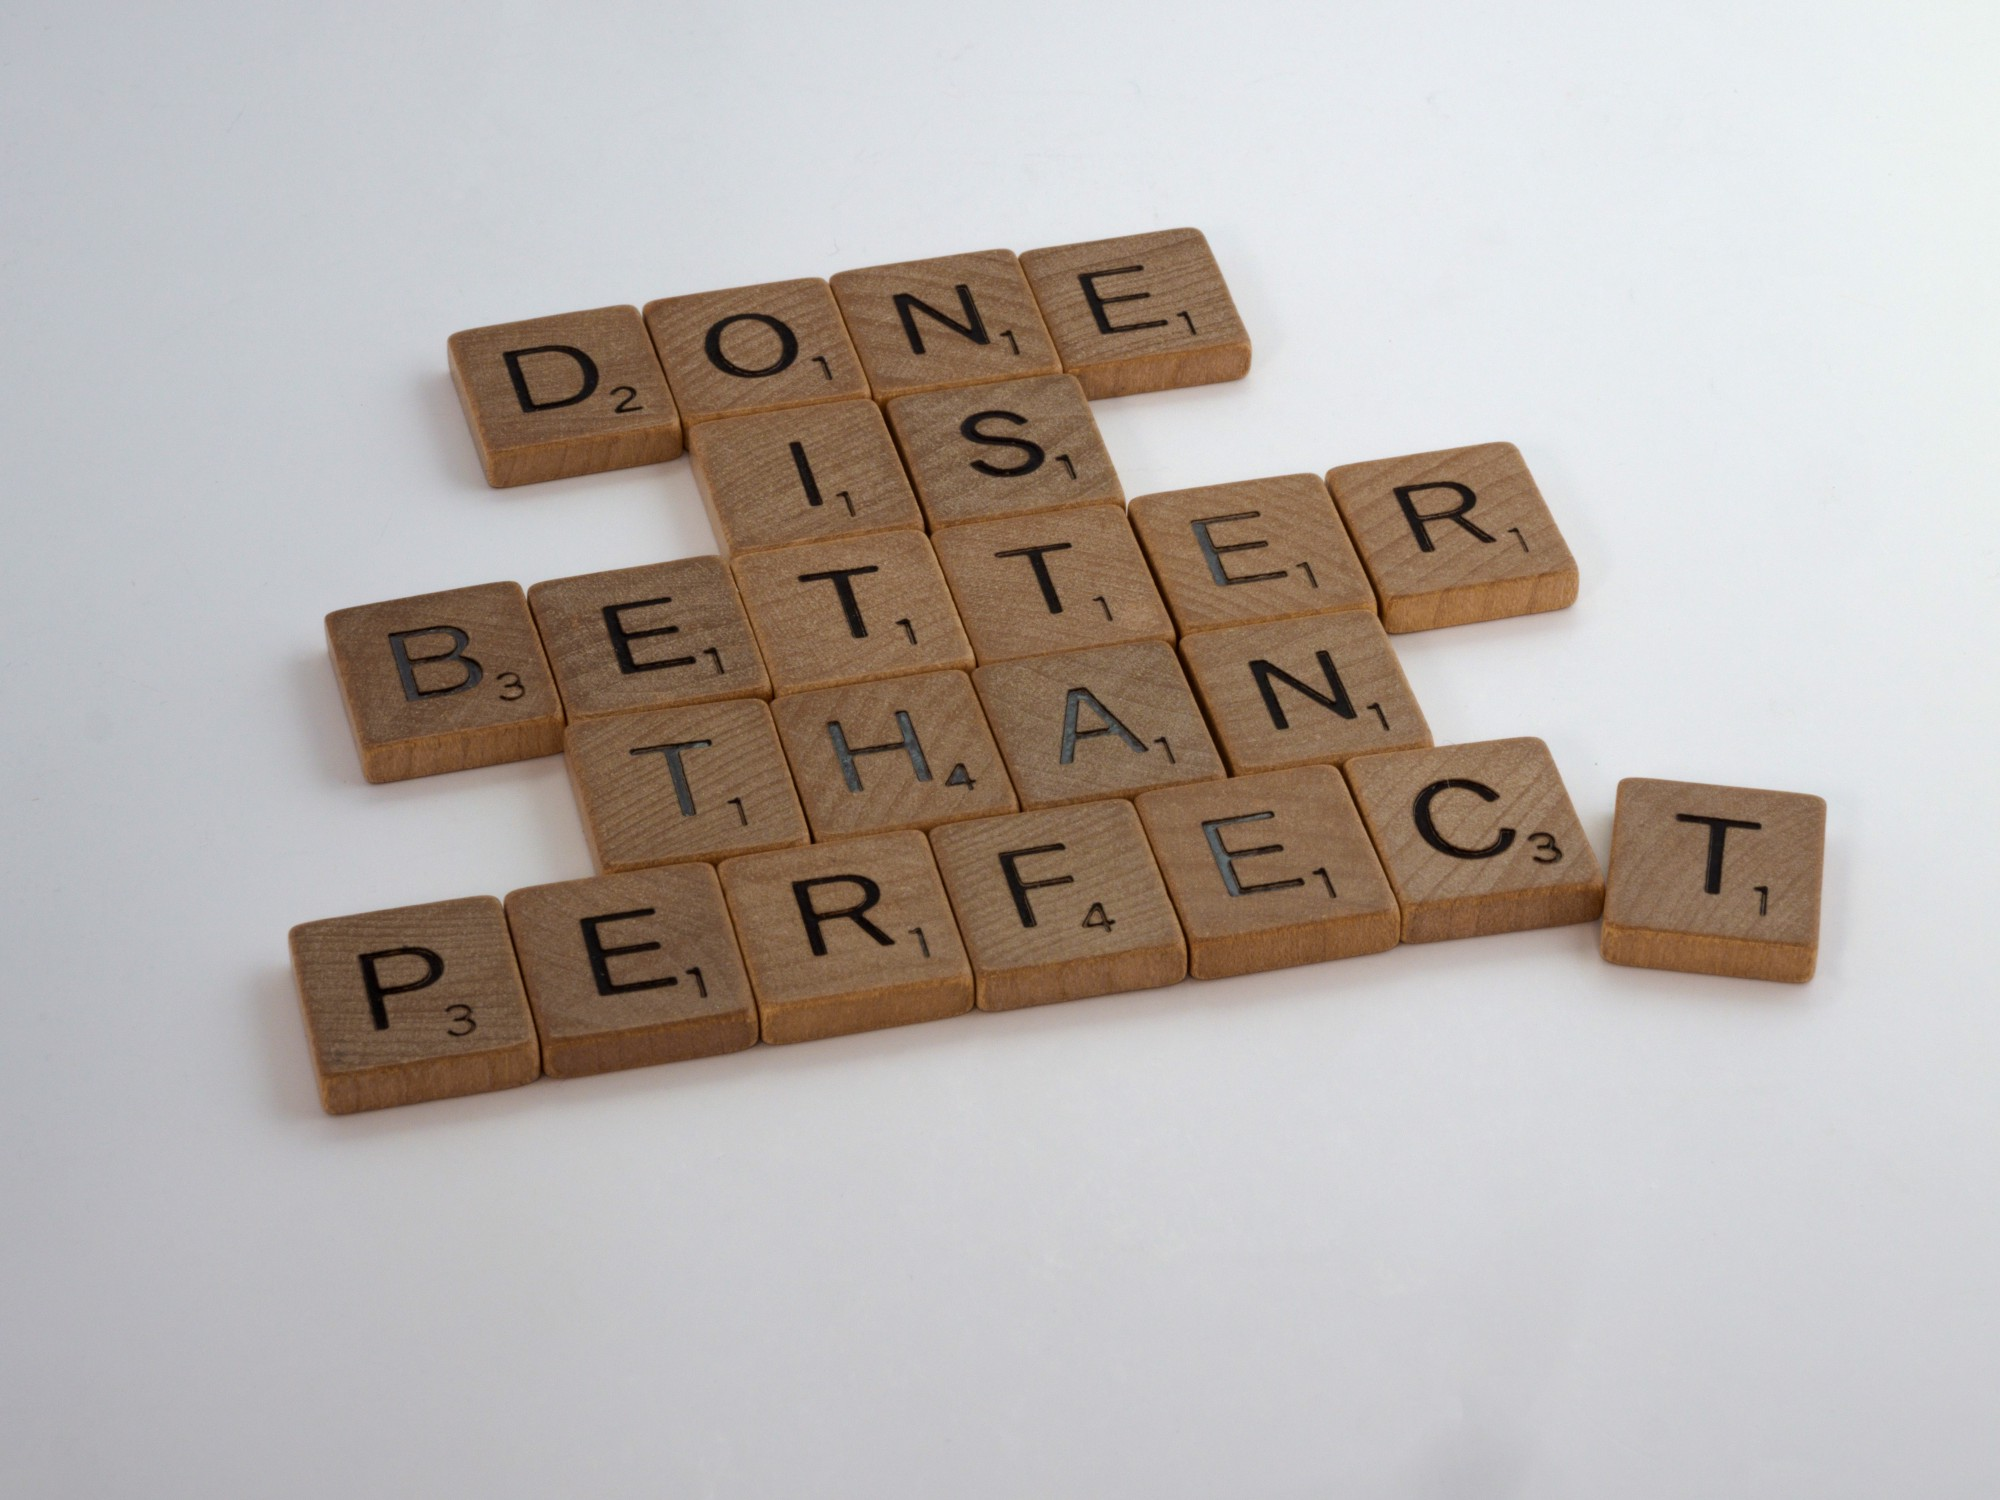 """Scrabble tiles compose """"Done is better than perfect"""""""